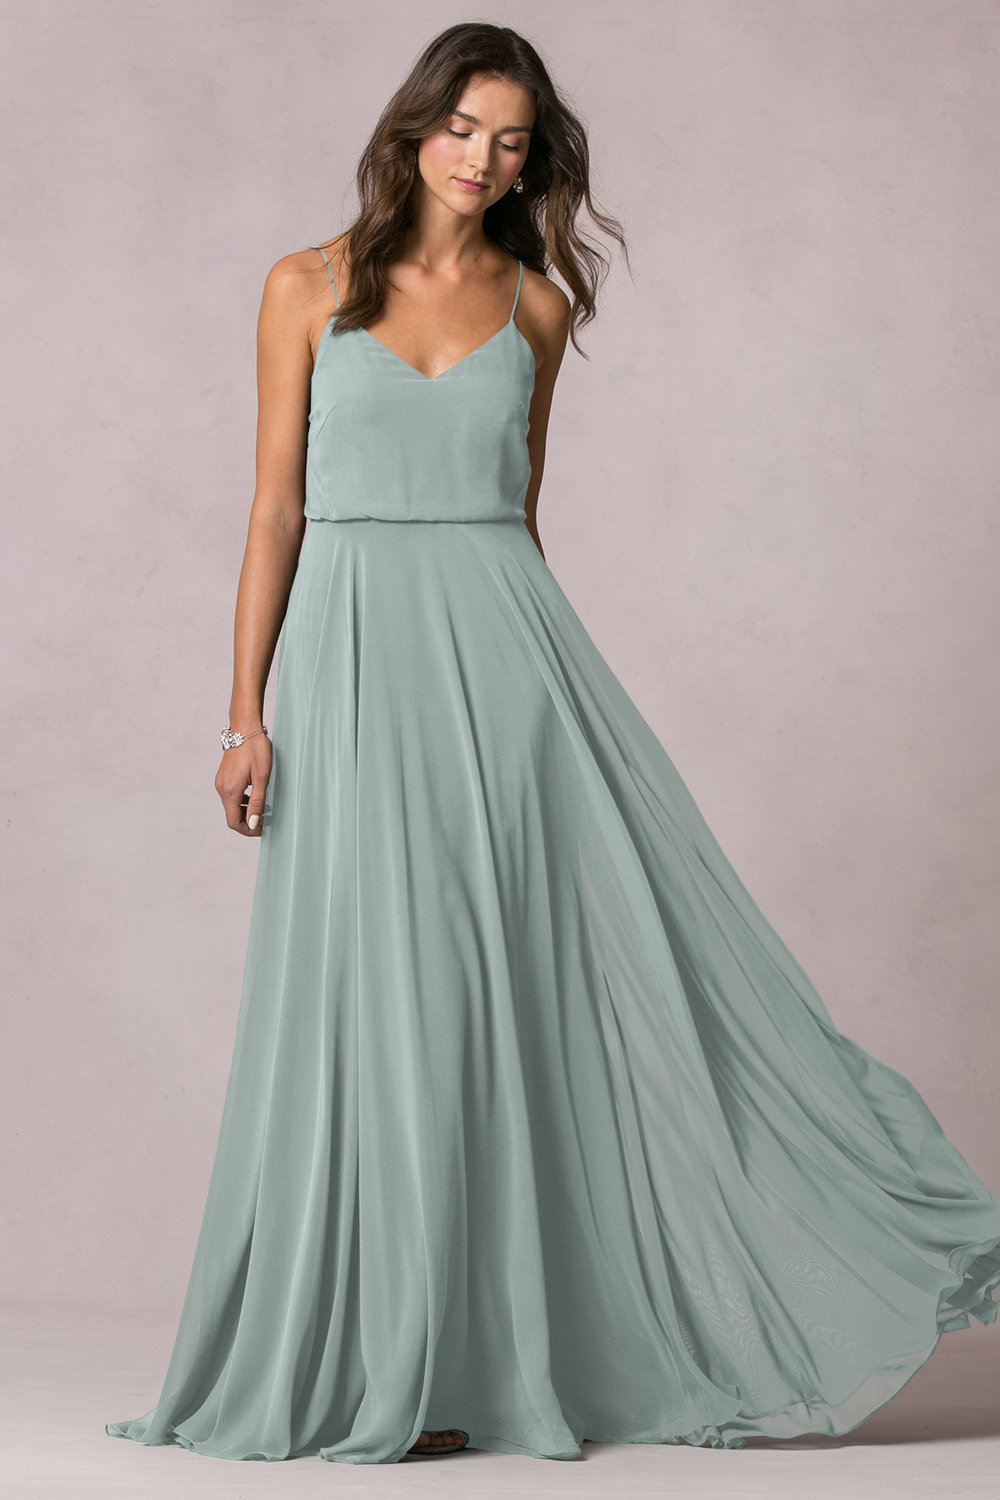 Inesse in morning mist by Jenny Yoo Bridesmaids